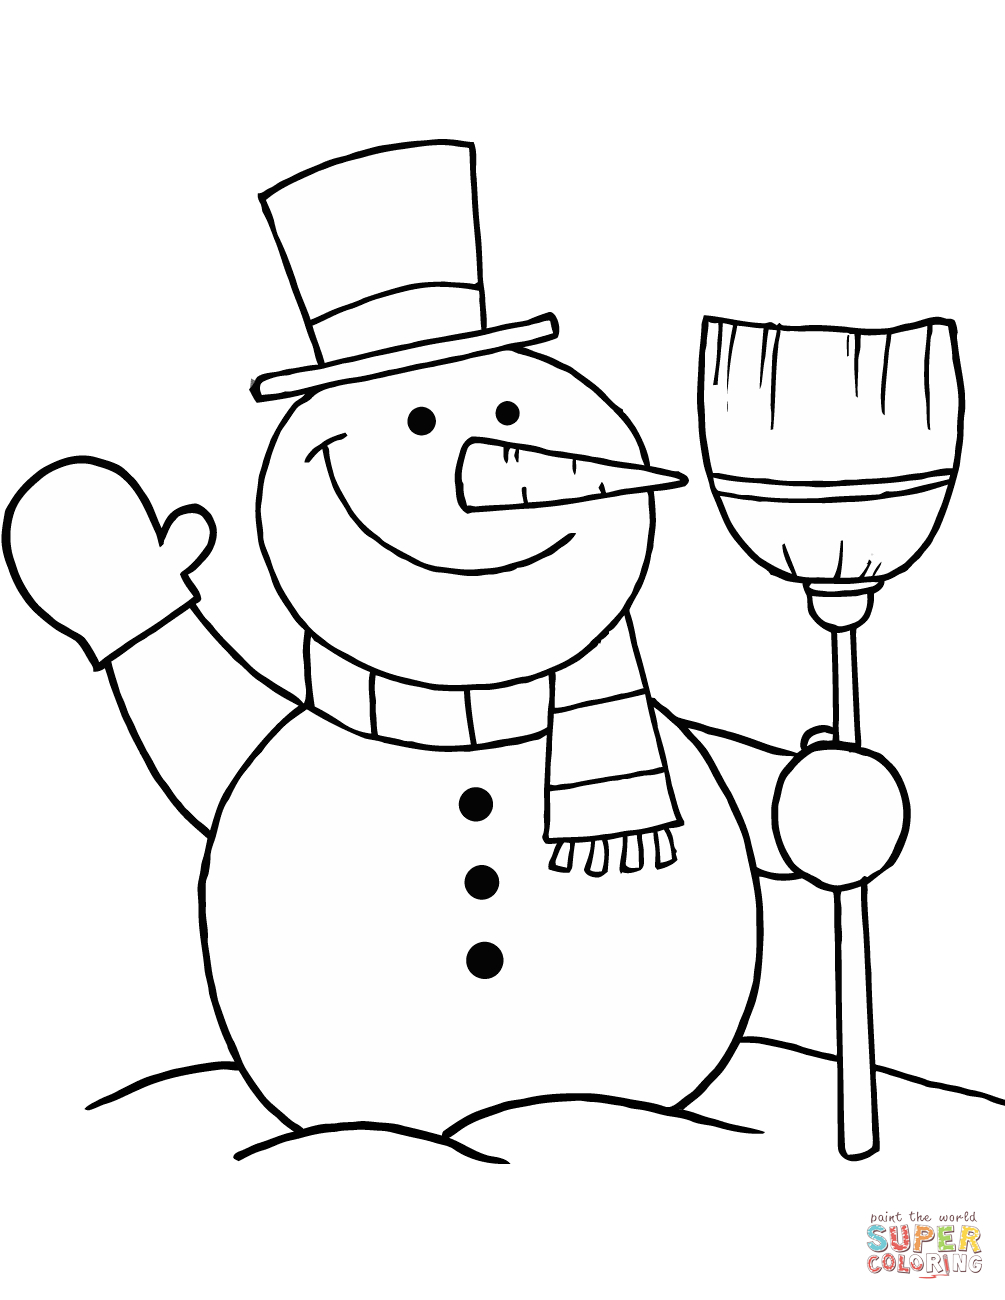 Snowman With Broom Coloring Page | Free Printable Coloring Pages - Printable Snowman Puzzle